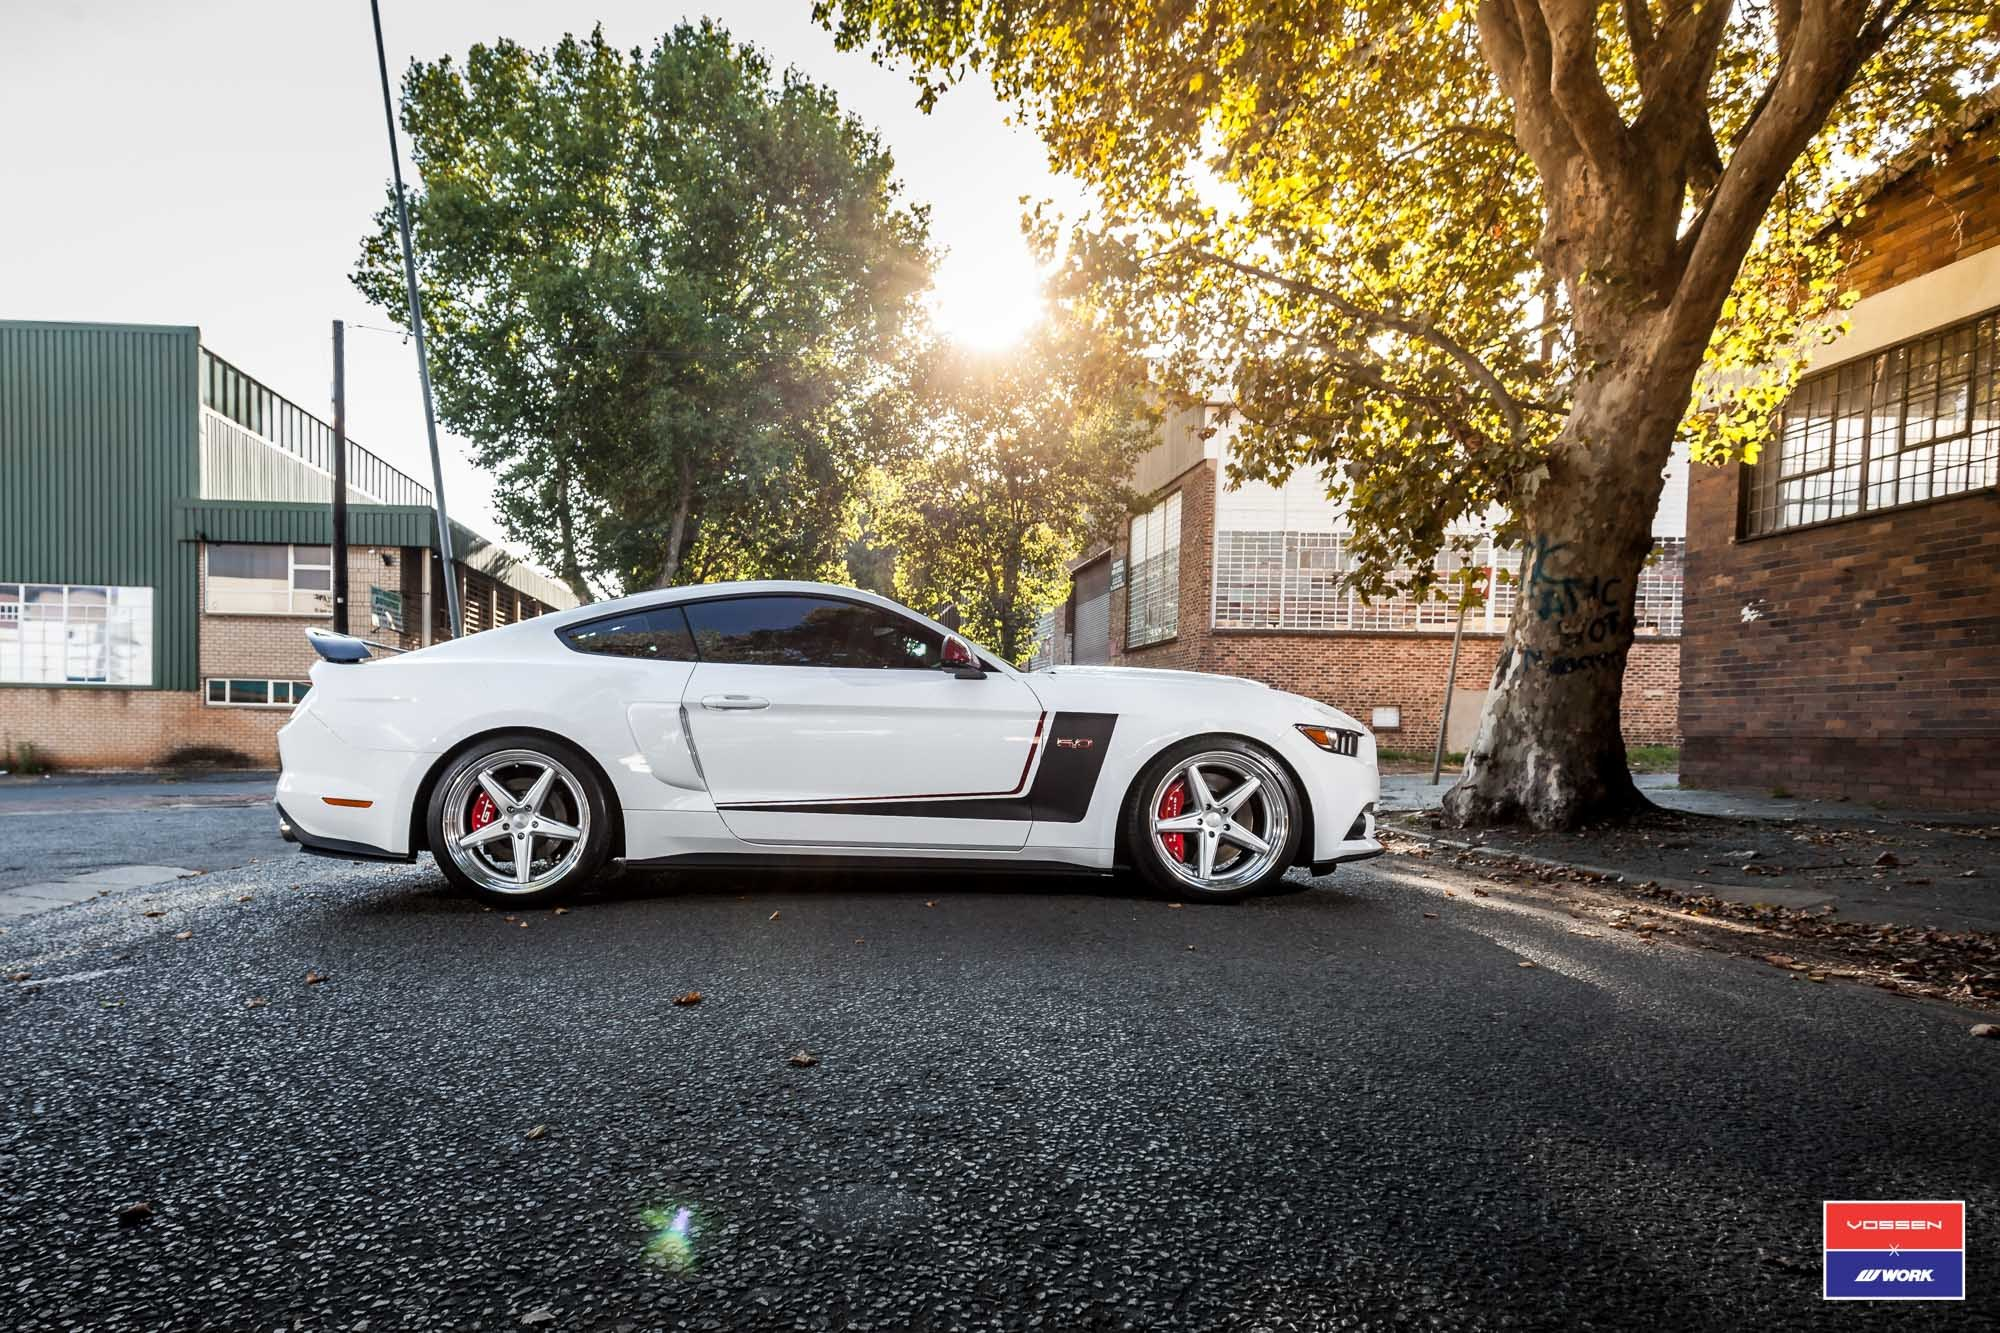 Chrome Vossen Wheels on White Ford Mustang 5.0 - Photo by Vossen